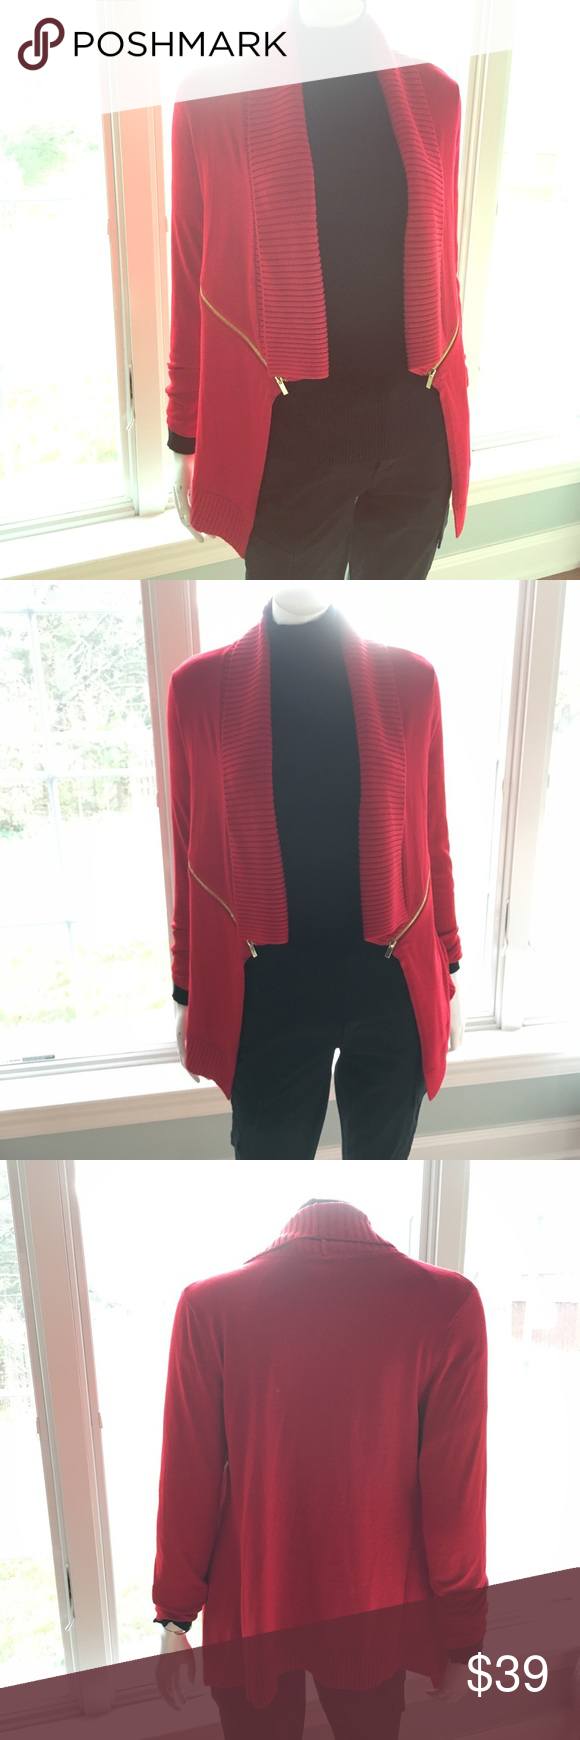 NEW INC red gold knit warm sweater cardigan M New with tags. Rayon, acrylic, nylon blend. Soft touch. Long sleeves. Golden zip details are functional. LC0550 INC International Concepts Sweaters Cardigans